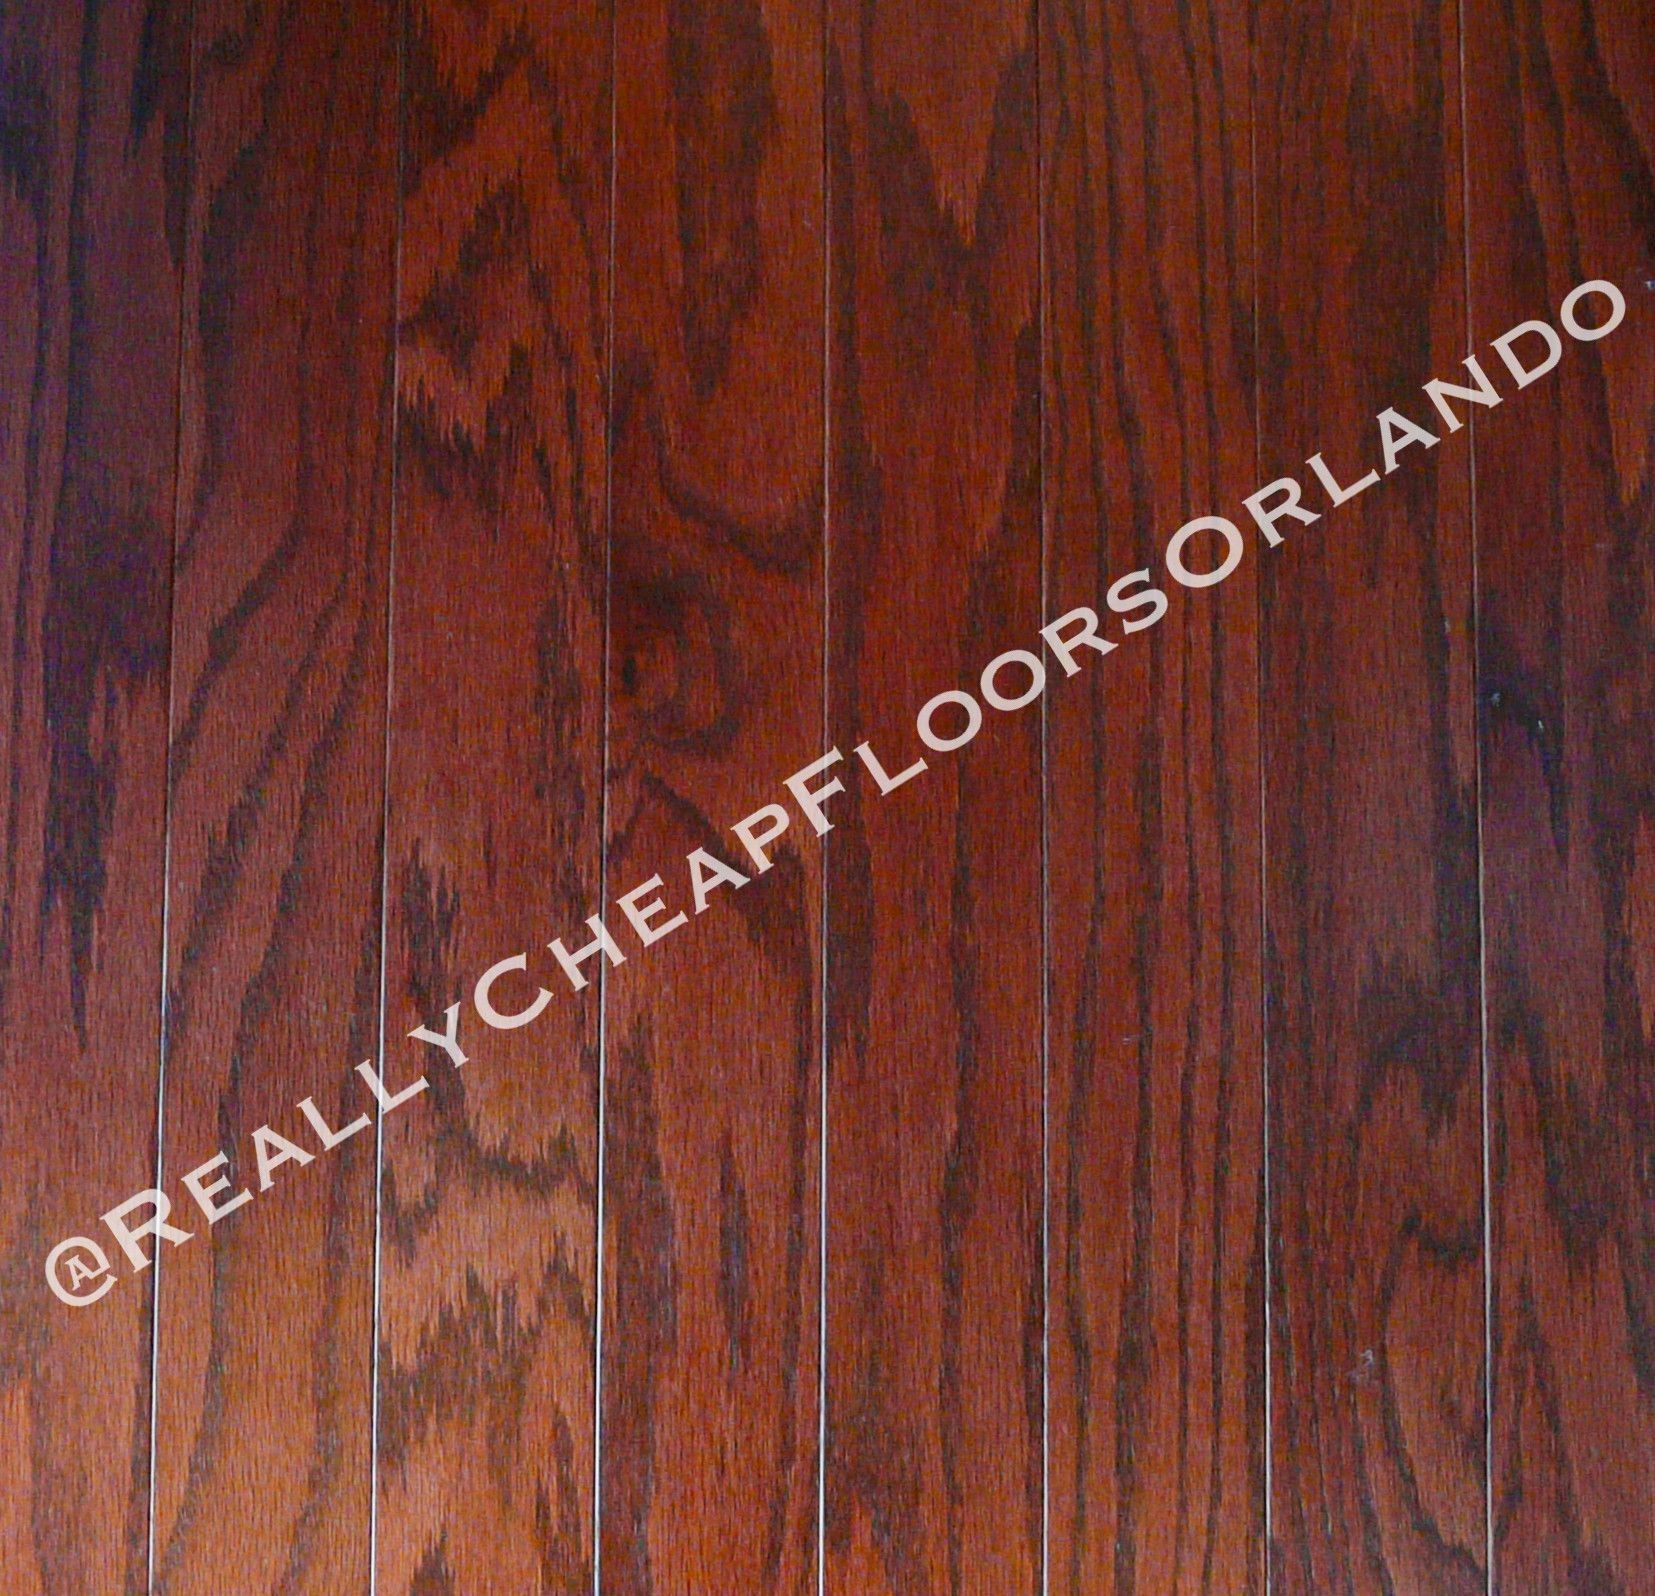 Bruce 3 8 Hardwood Flooring Of 19 New Cheapest Hardwood Flooring Photograph Dizpos Com Pertaining to Cheapest Hardwood Flooring Inspirational American Made Hardwood Flooring at the Cheapest Prices Located at Photograph Of